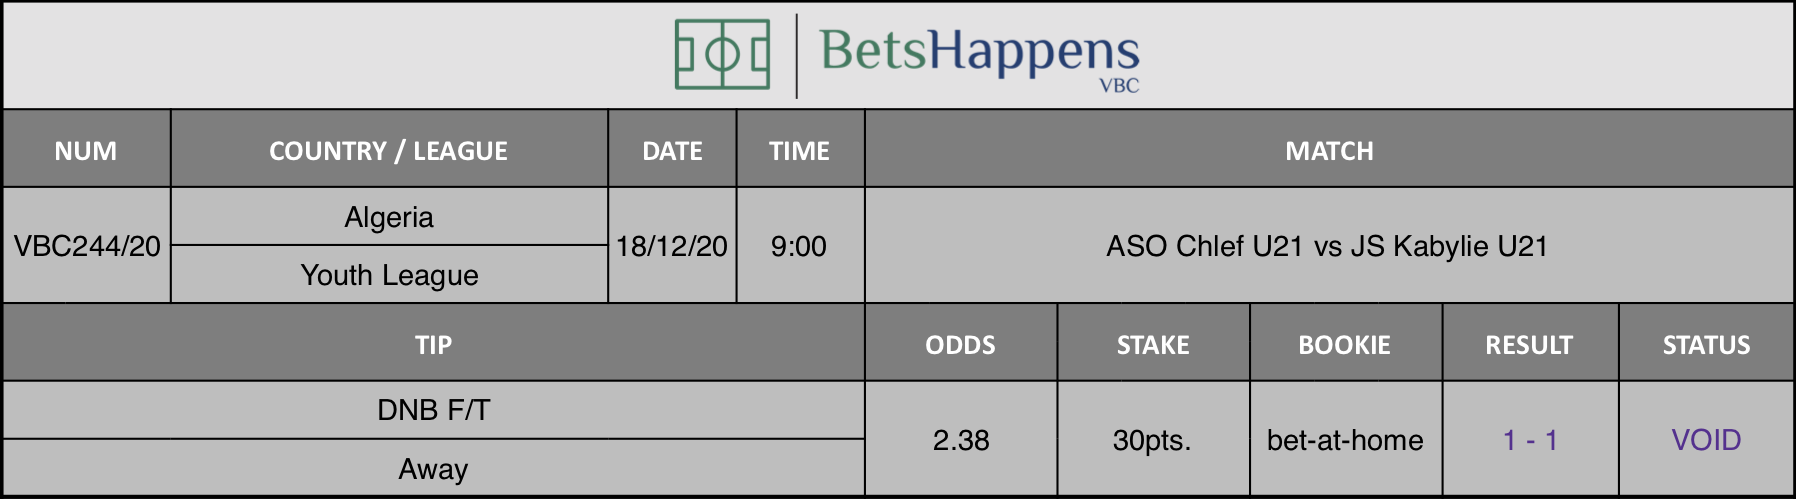 Results of our tip for the ASO Chlef U21 vs JS Kabylie U21 match where DNB F/T Away is recommended.